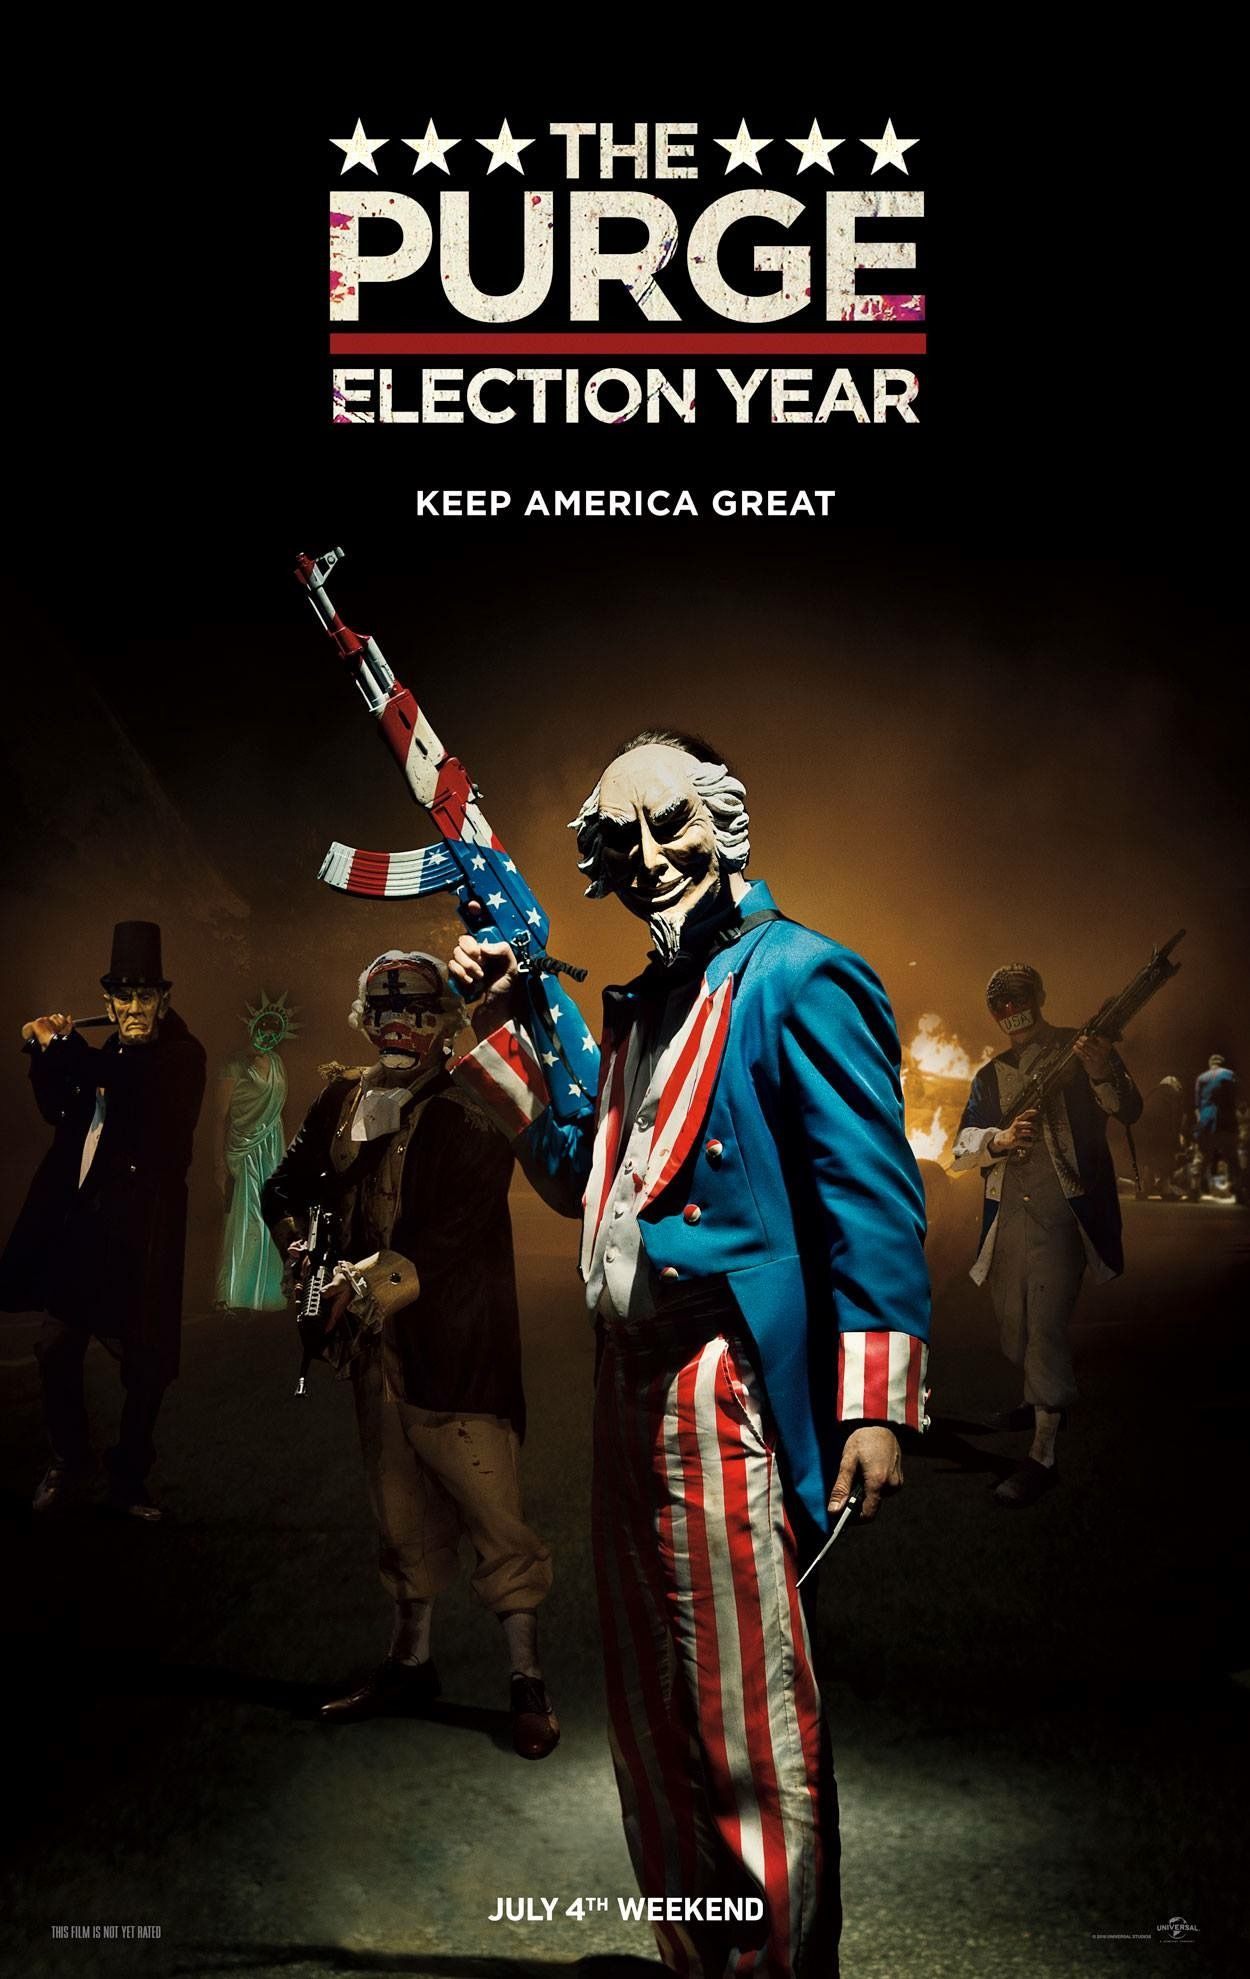 The Purge: Election Year - Keep America Great poster